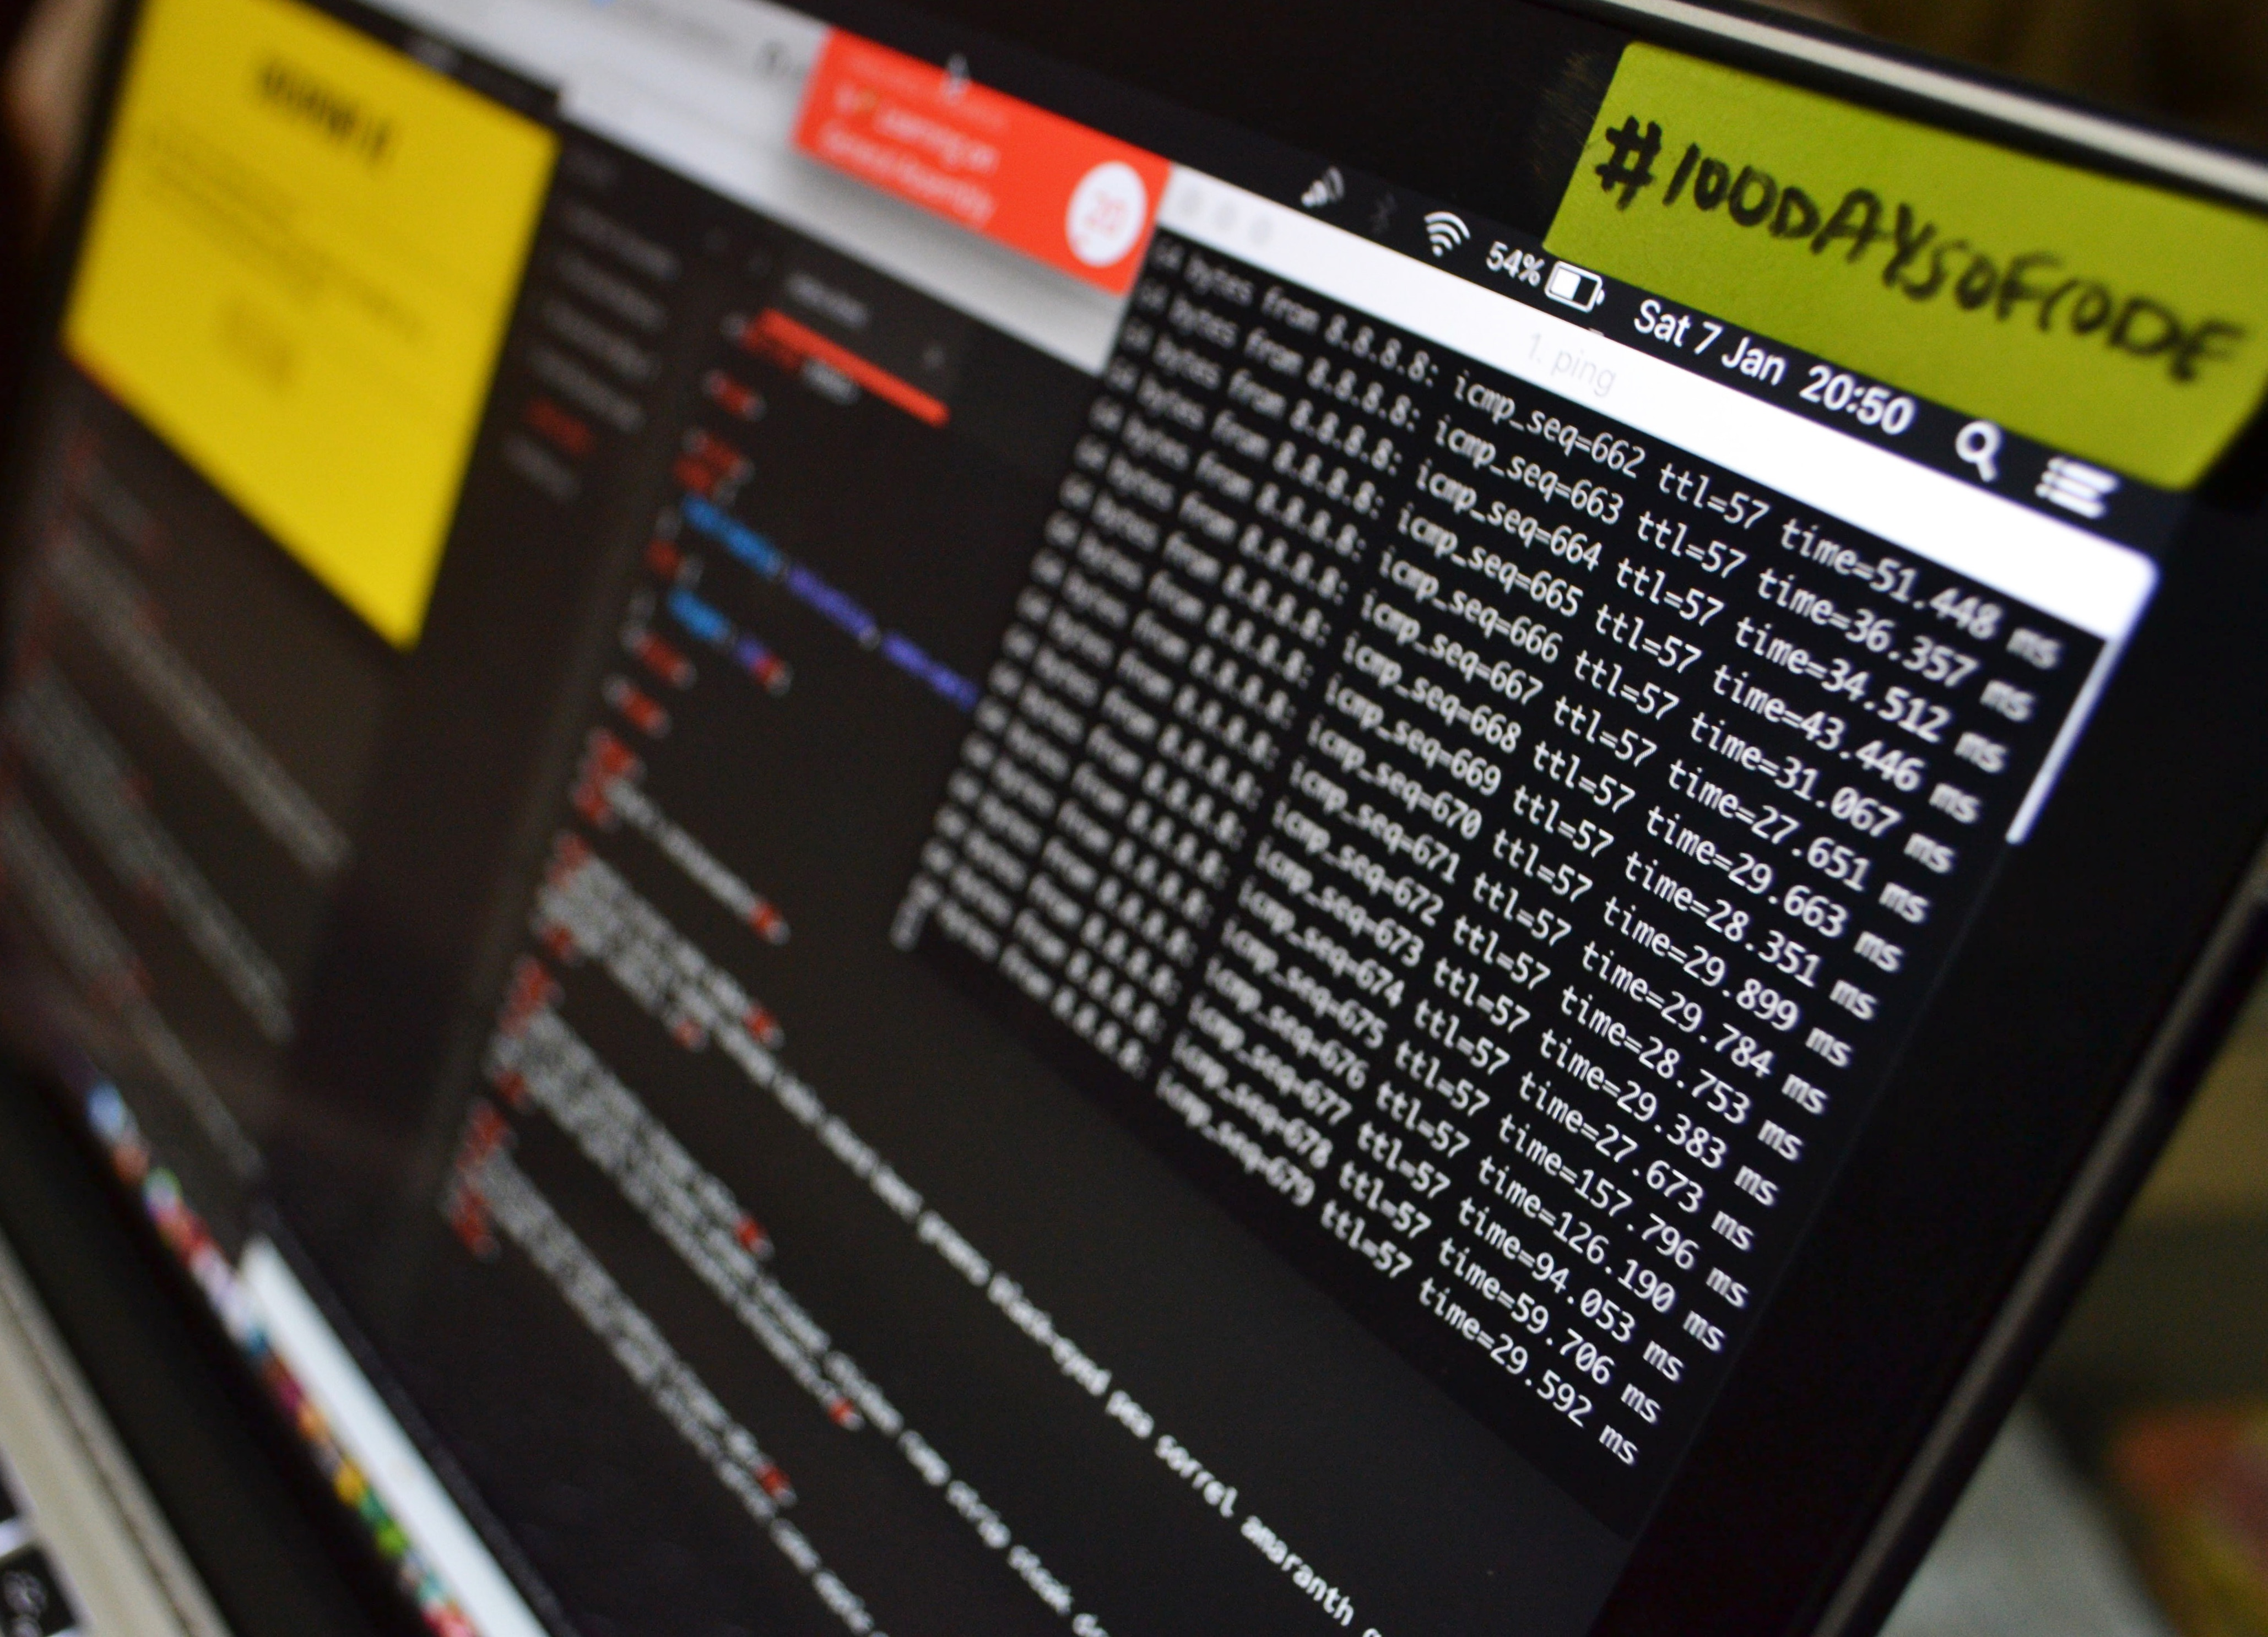 Ransomware: What is it? How can we protect against it?